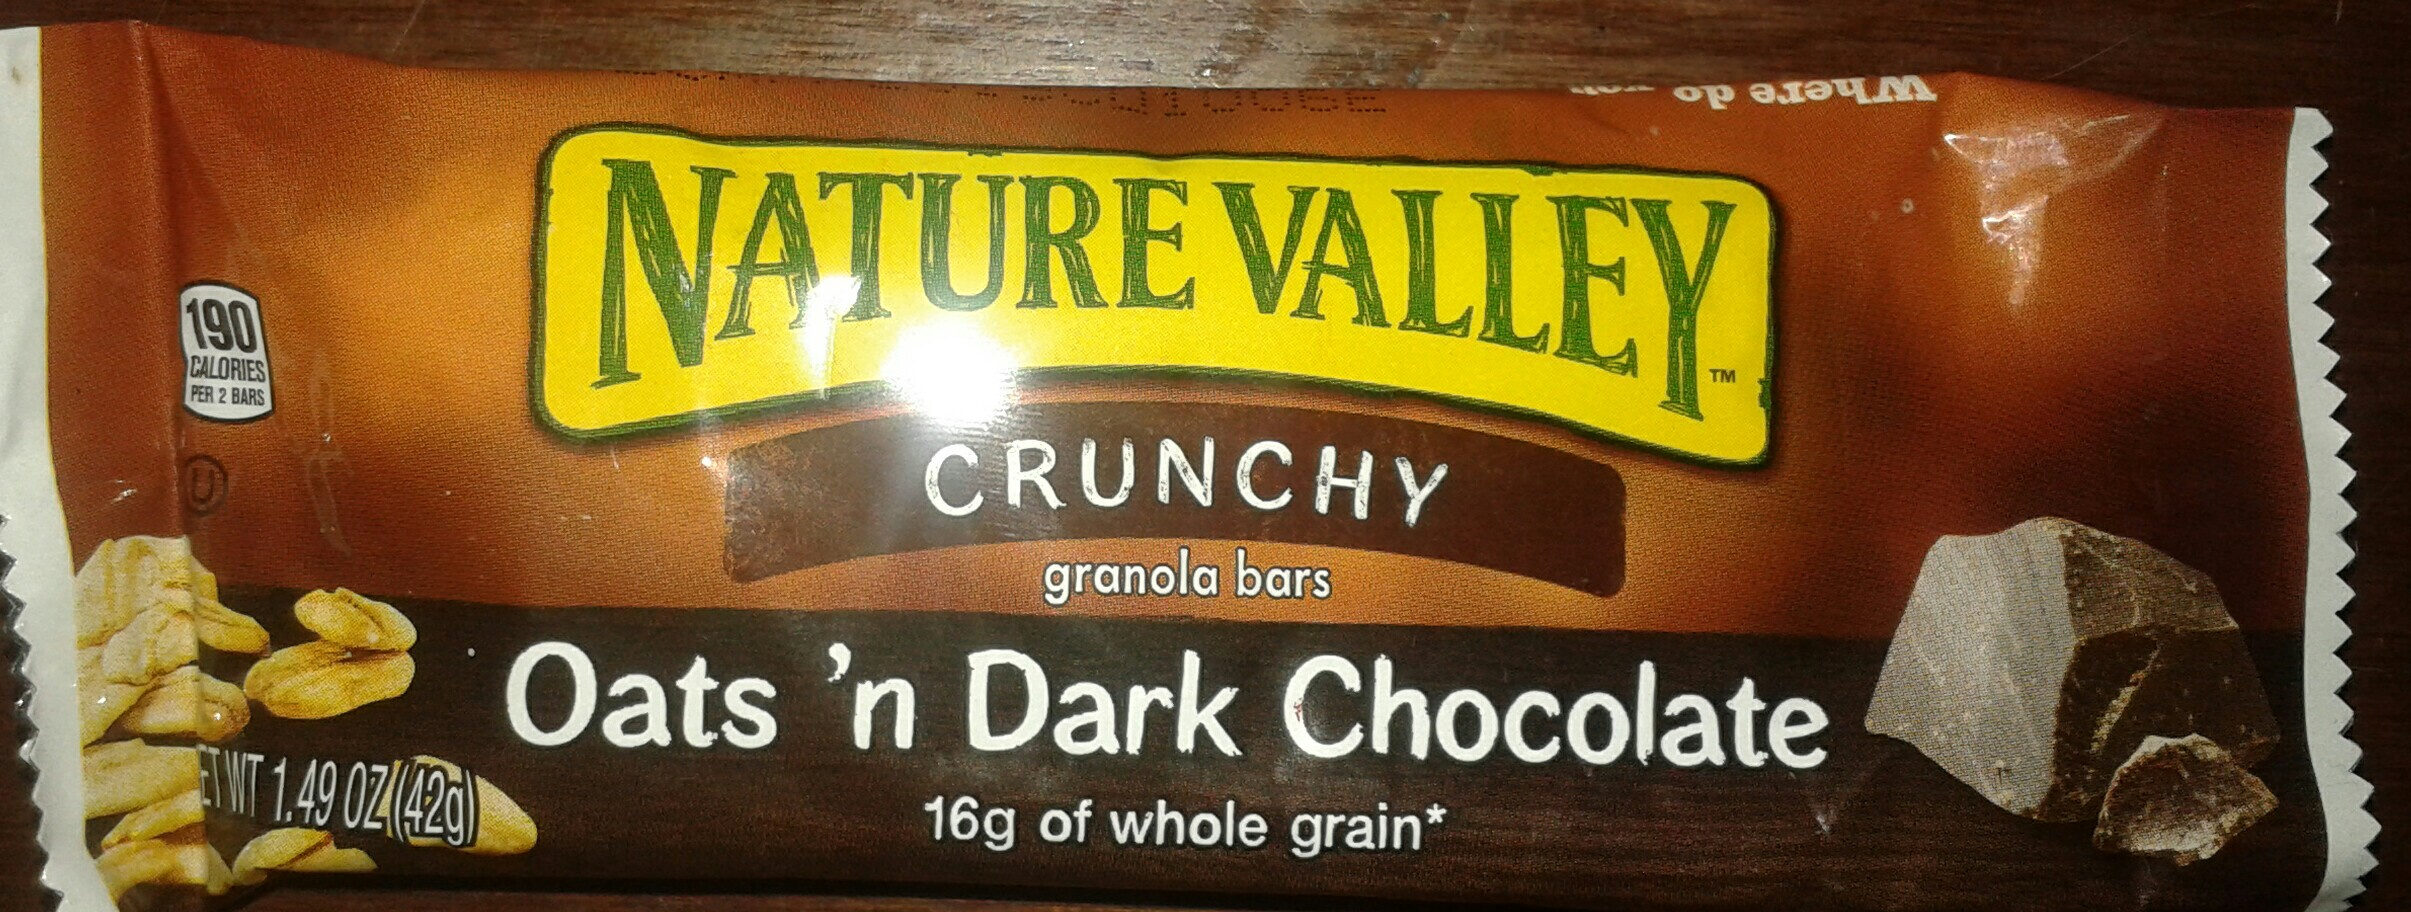 Nature Valley Crunchy Oats 'n Dark Chocolate Granola Bar - Product - en